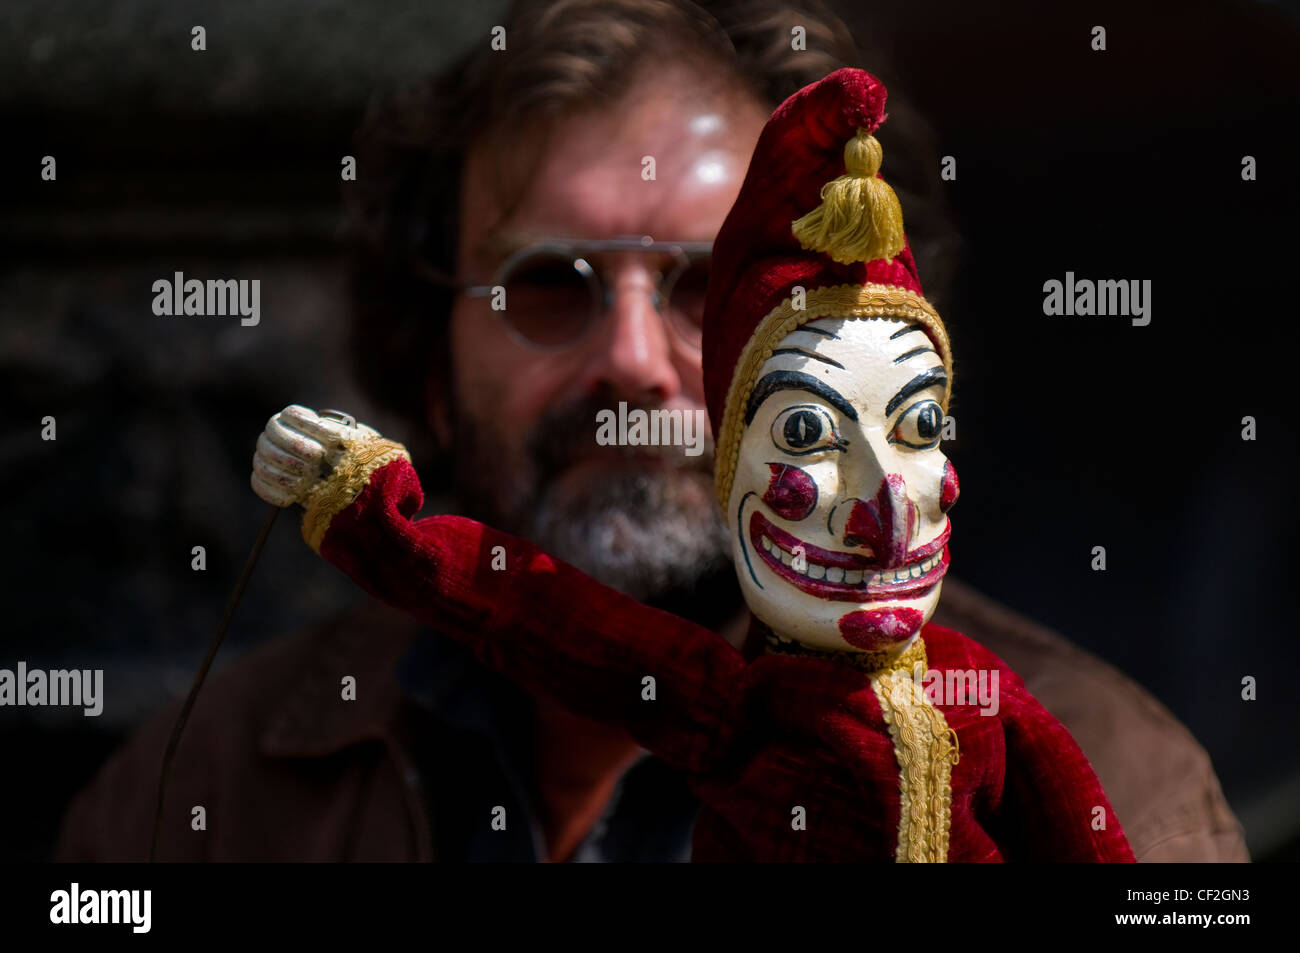 Mr Punch and a puppeteer at the annual Punch and Judy festival held in Covent Garden. - Stock Image